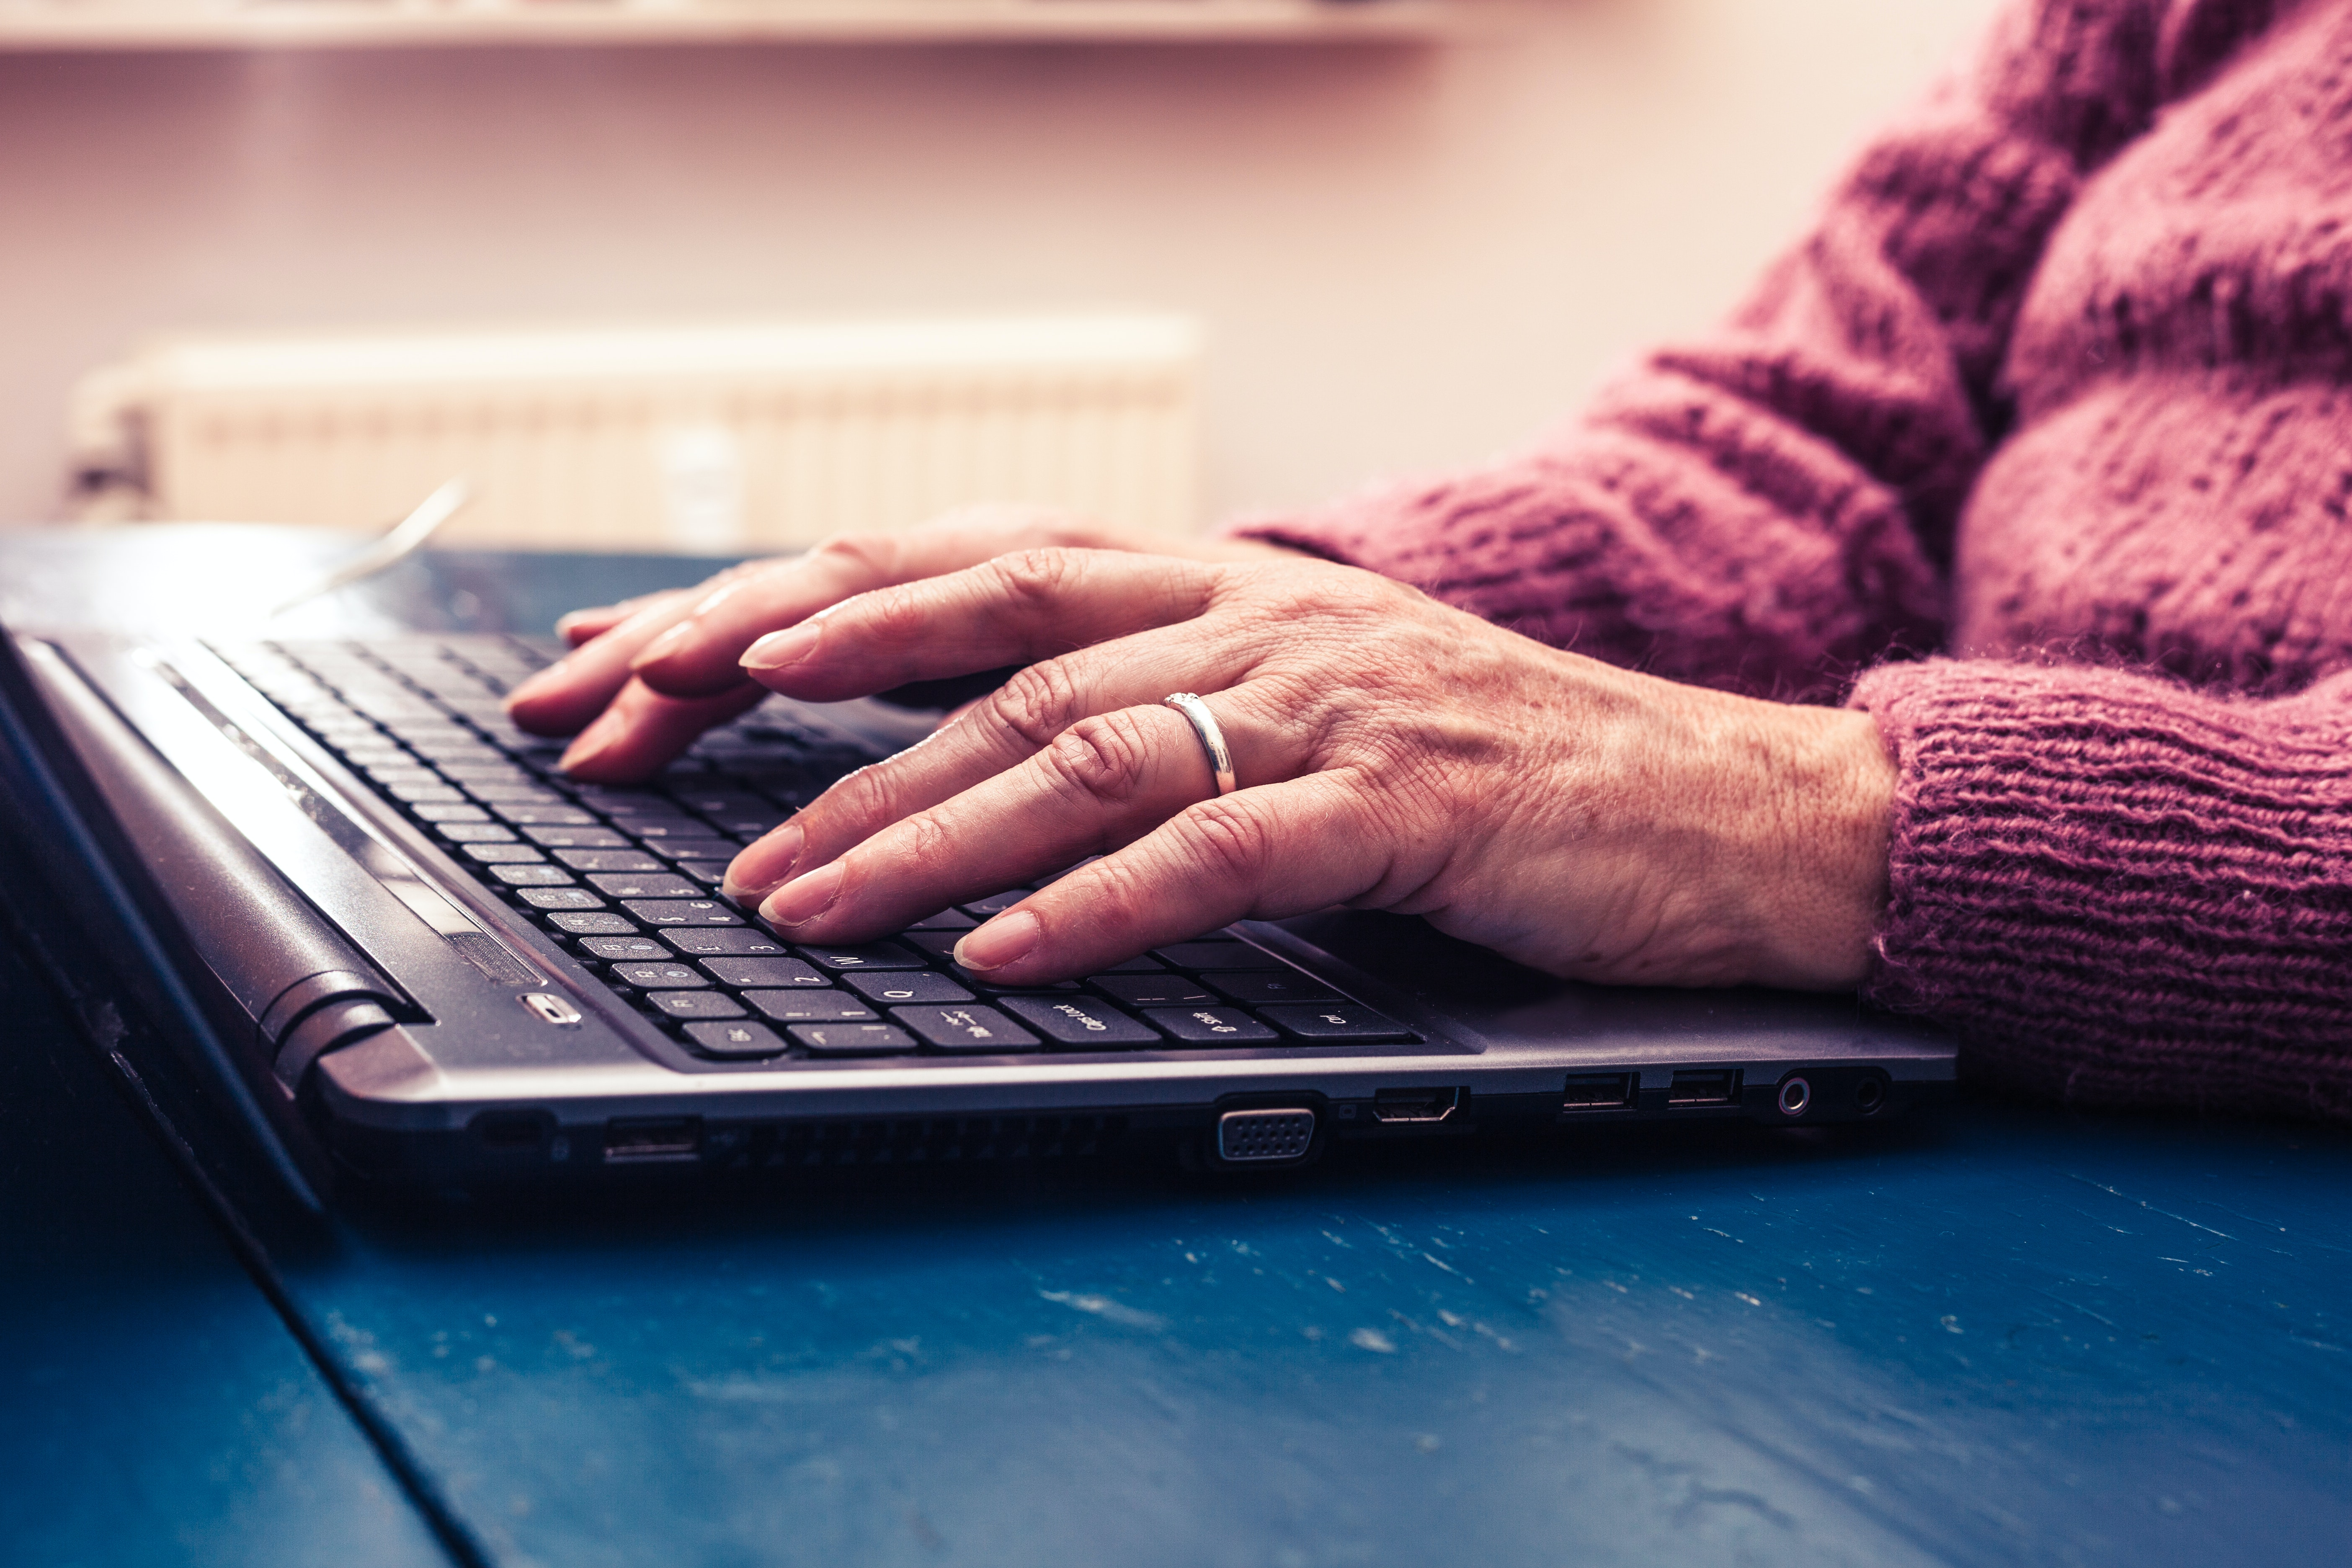 Connecting online can help prevent social isolation in ...